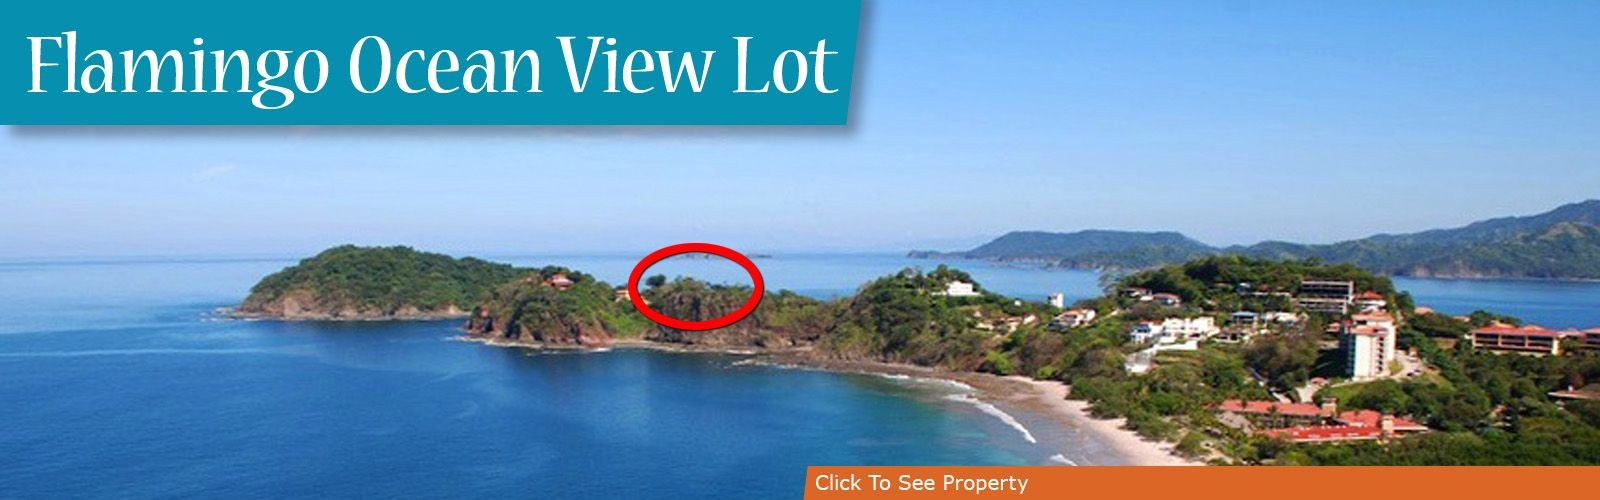 Flamingo Ocean View Lot-Costa Rica Land For Sale Overseas Pacific Realty